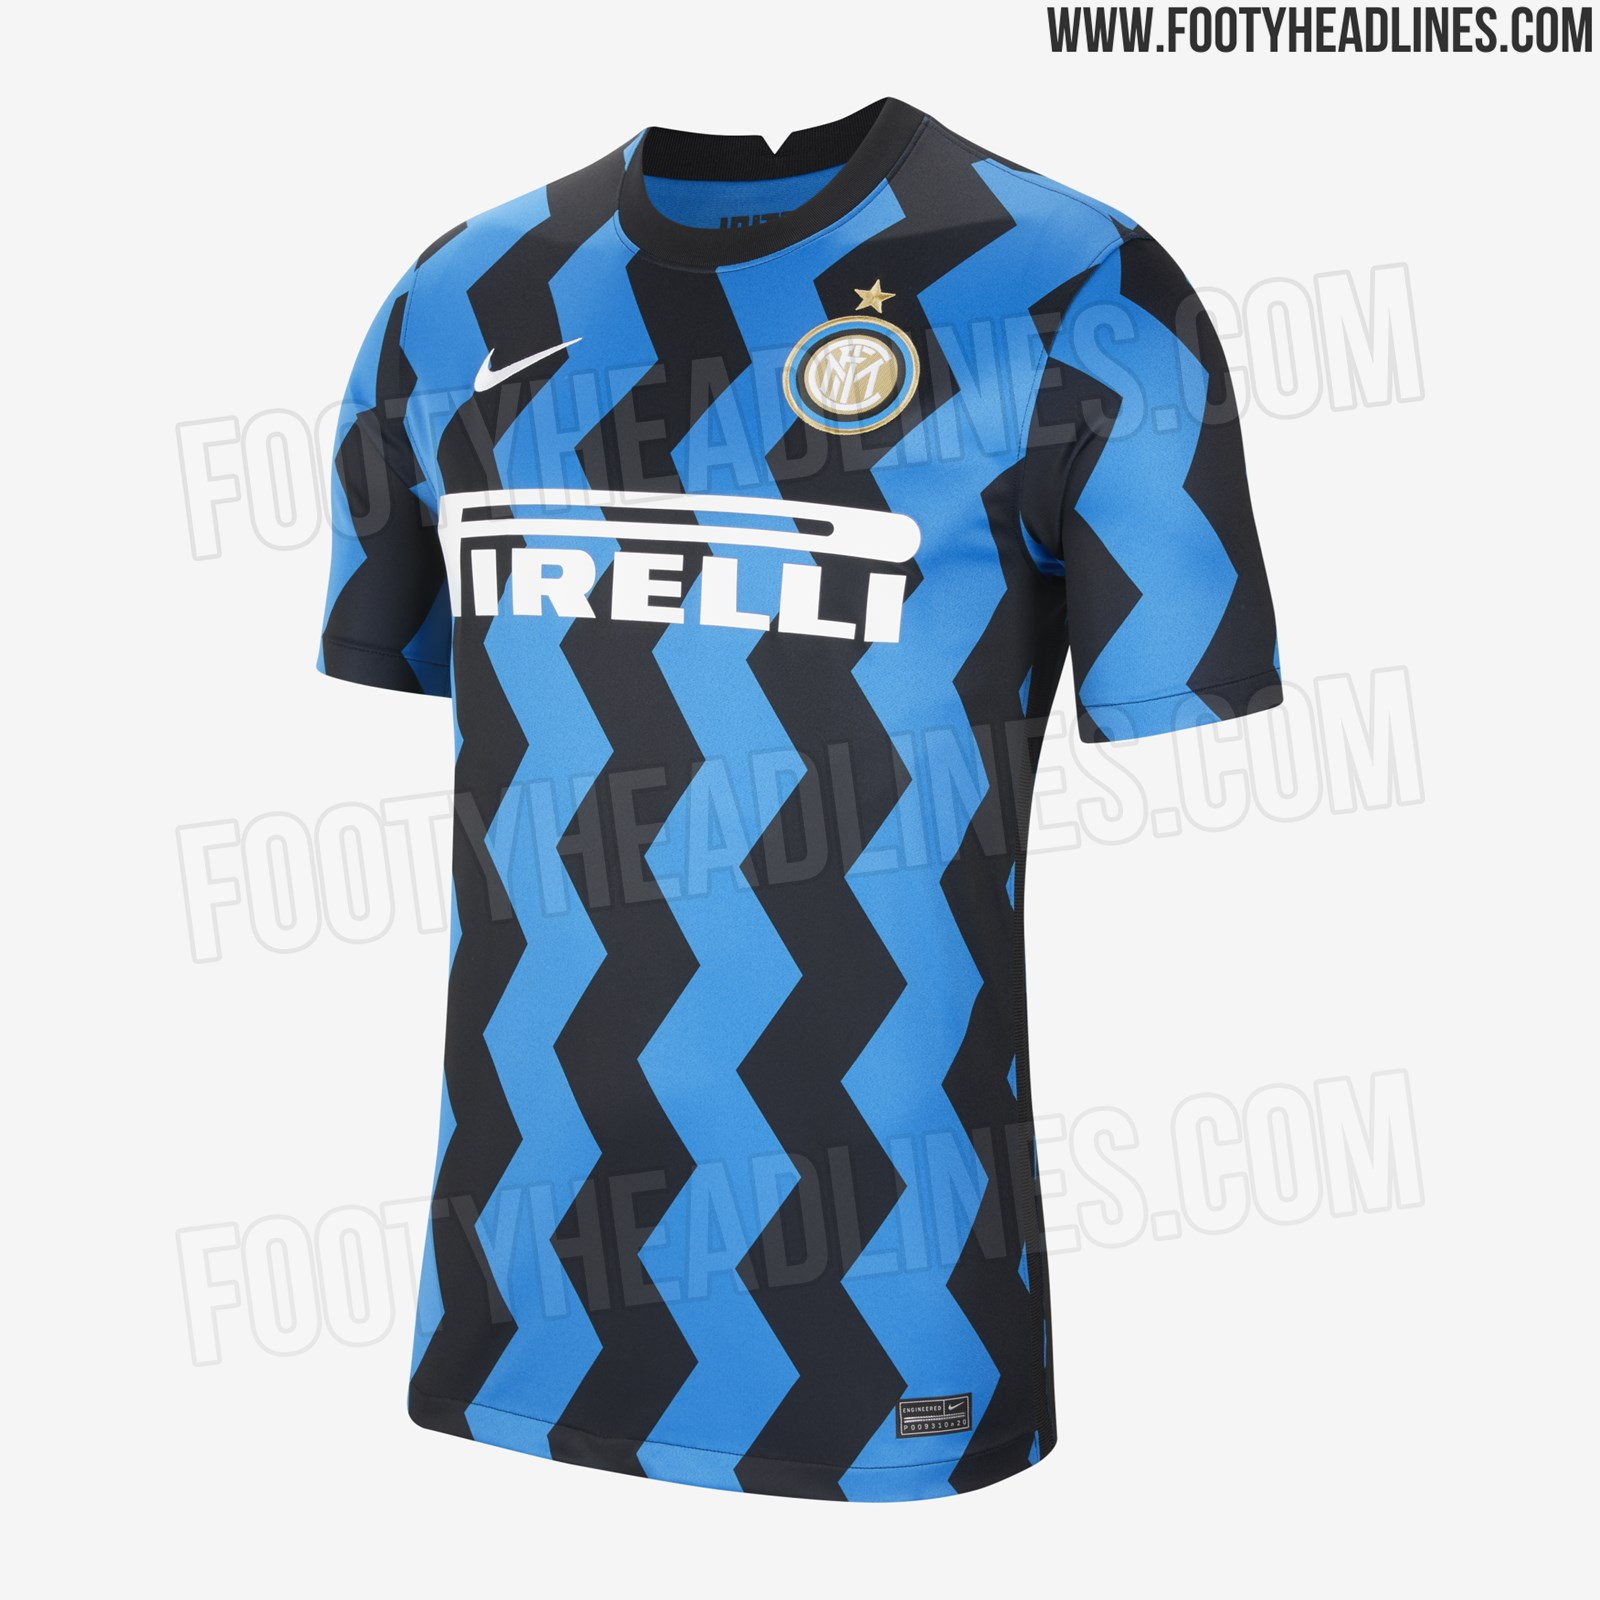 inter-20-21-home-kit-1.jpg